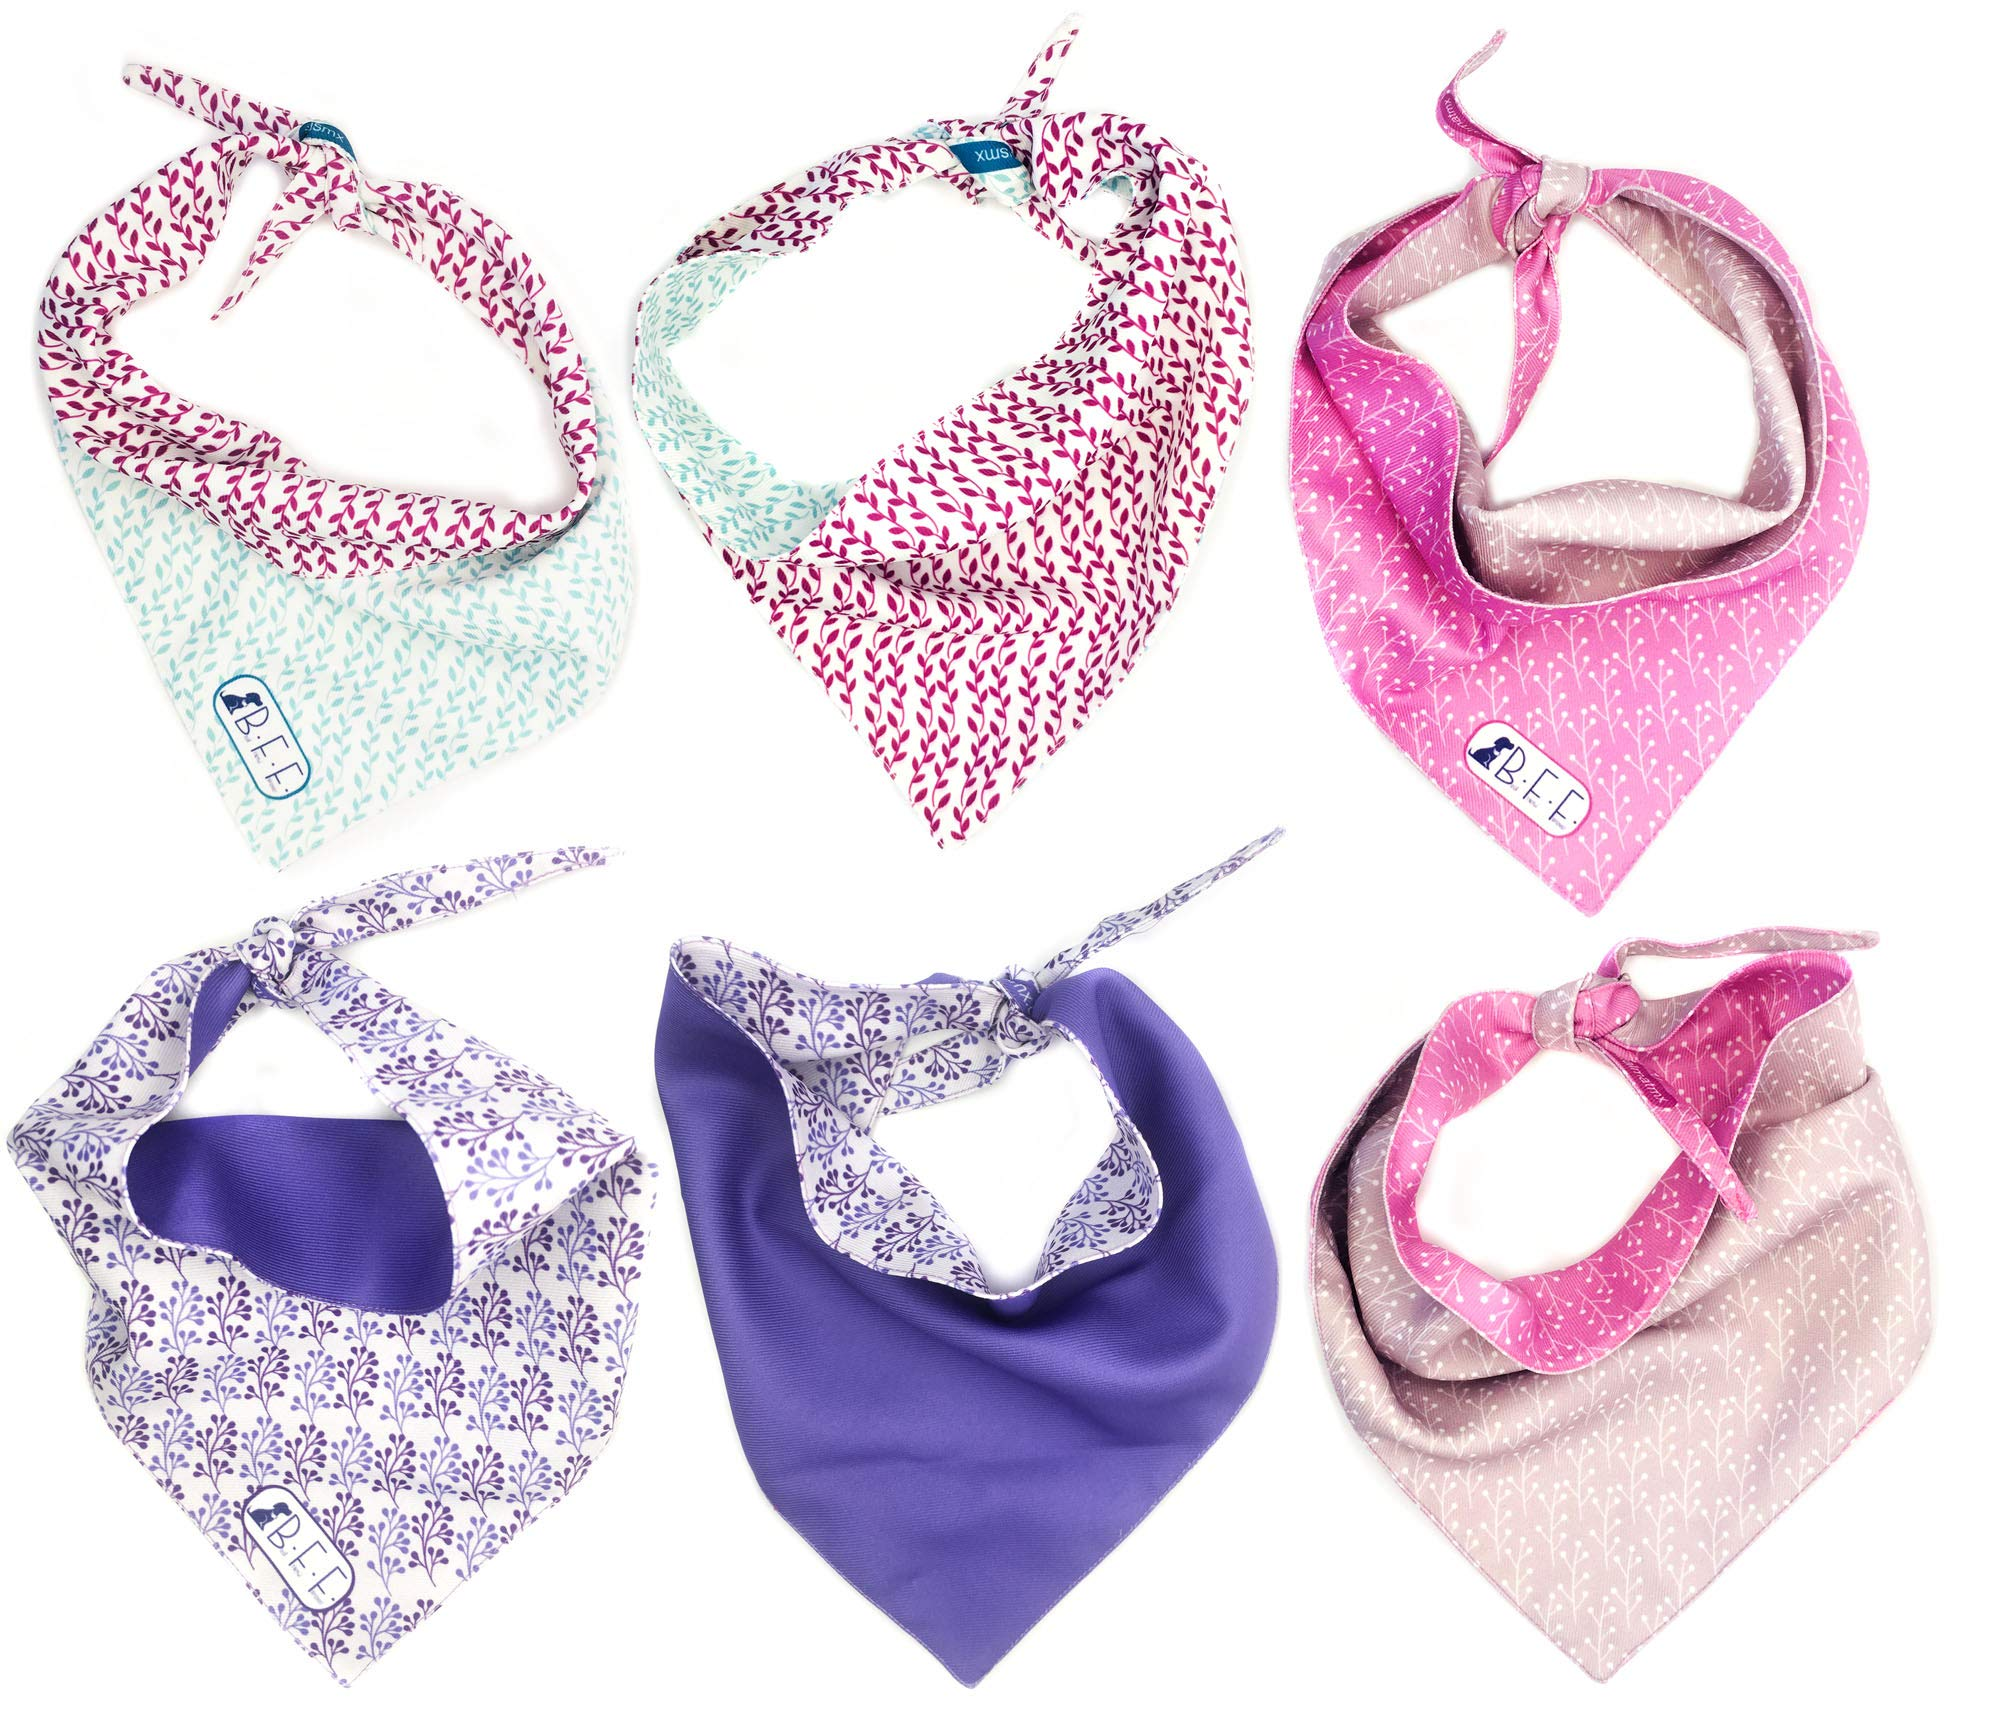 B&F 3 Pack Reversible Dog Bandana 3 Pieces - 6 Looks, Machine Washable Handmade pet Accessories. Scarves for Small, Medium,and Large Dogs. Mod. River by B&F